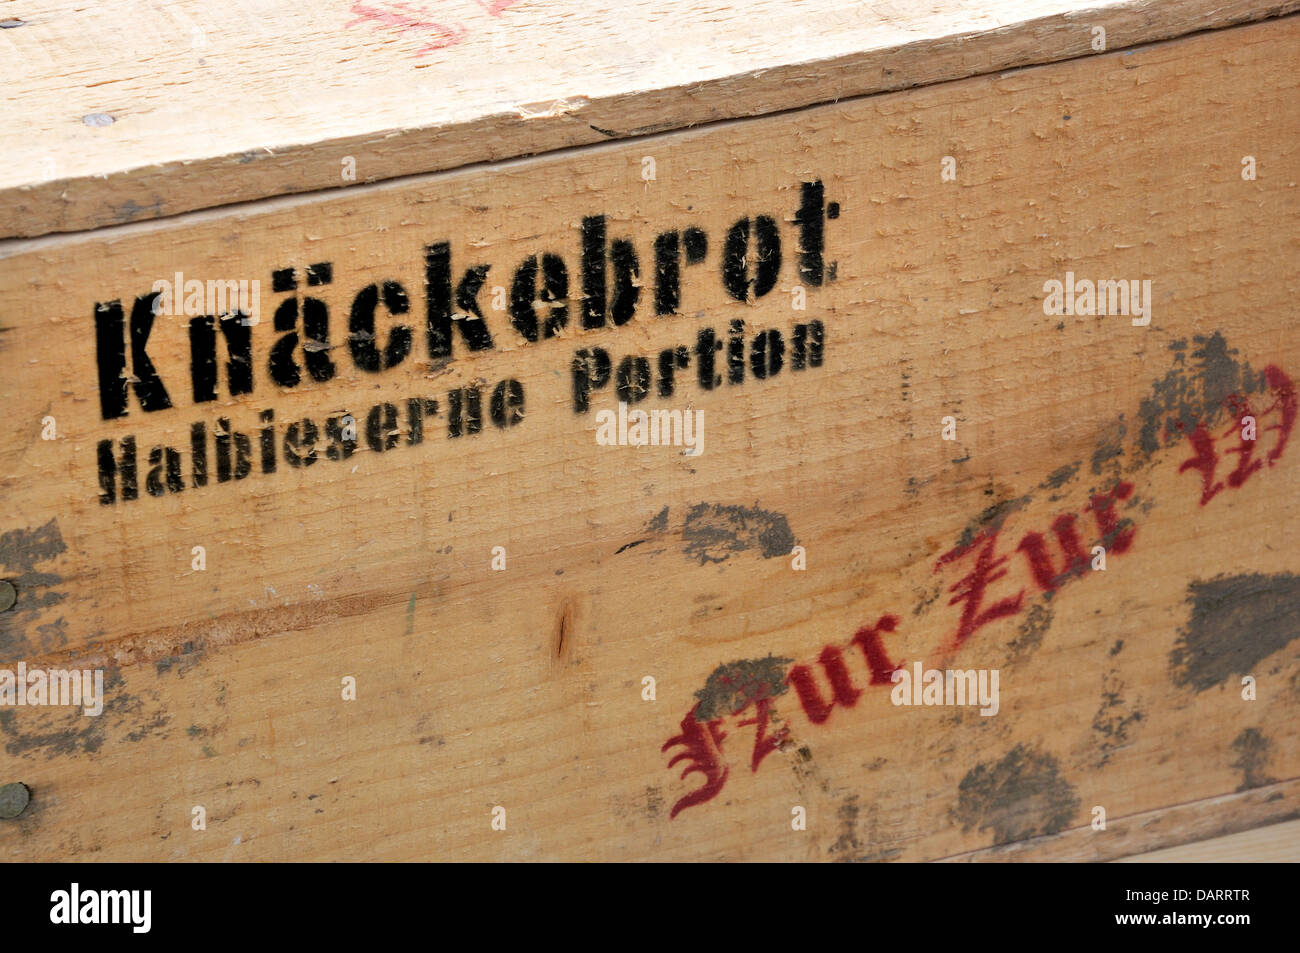 WW2 German wooden crate containing 'Crispbread; half portions'. War and Peace Revival, July 2013, Kent, - Stock Image